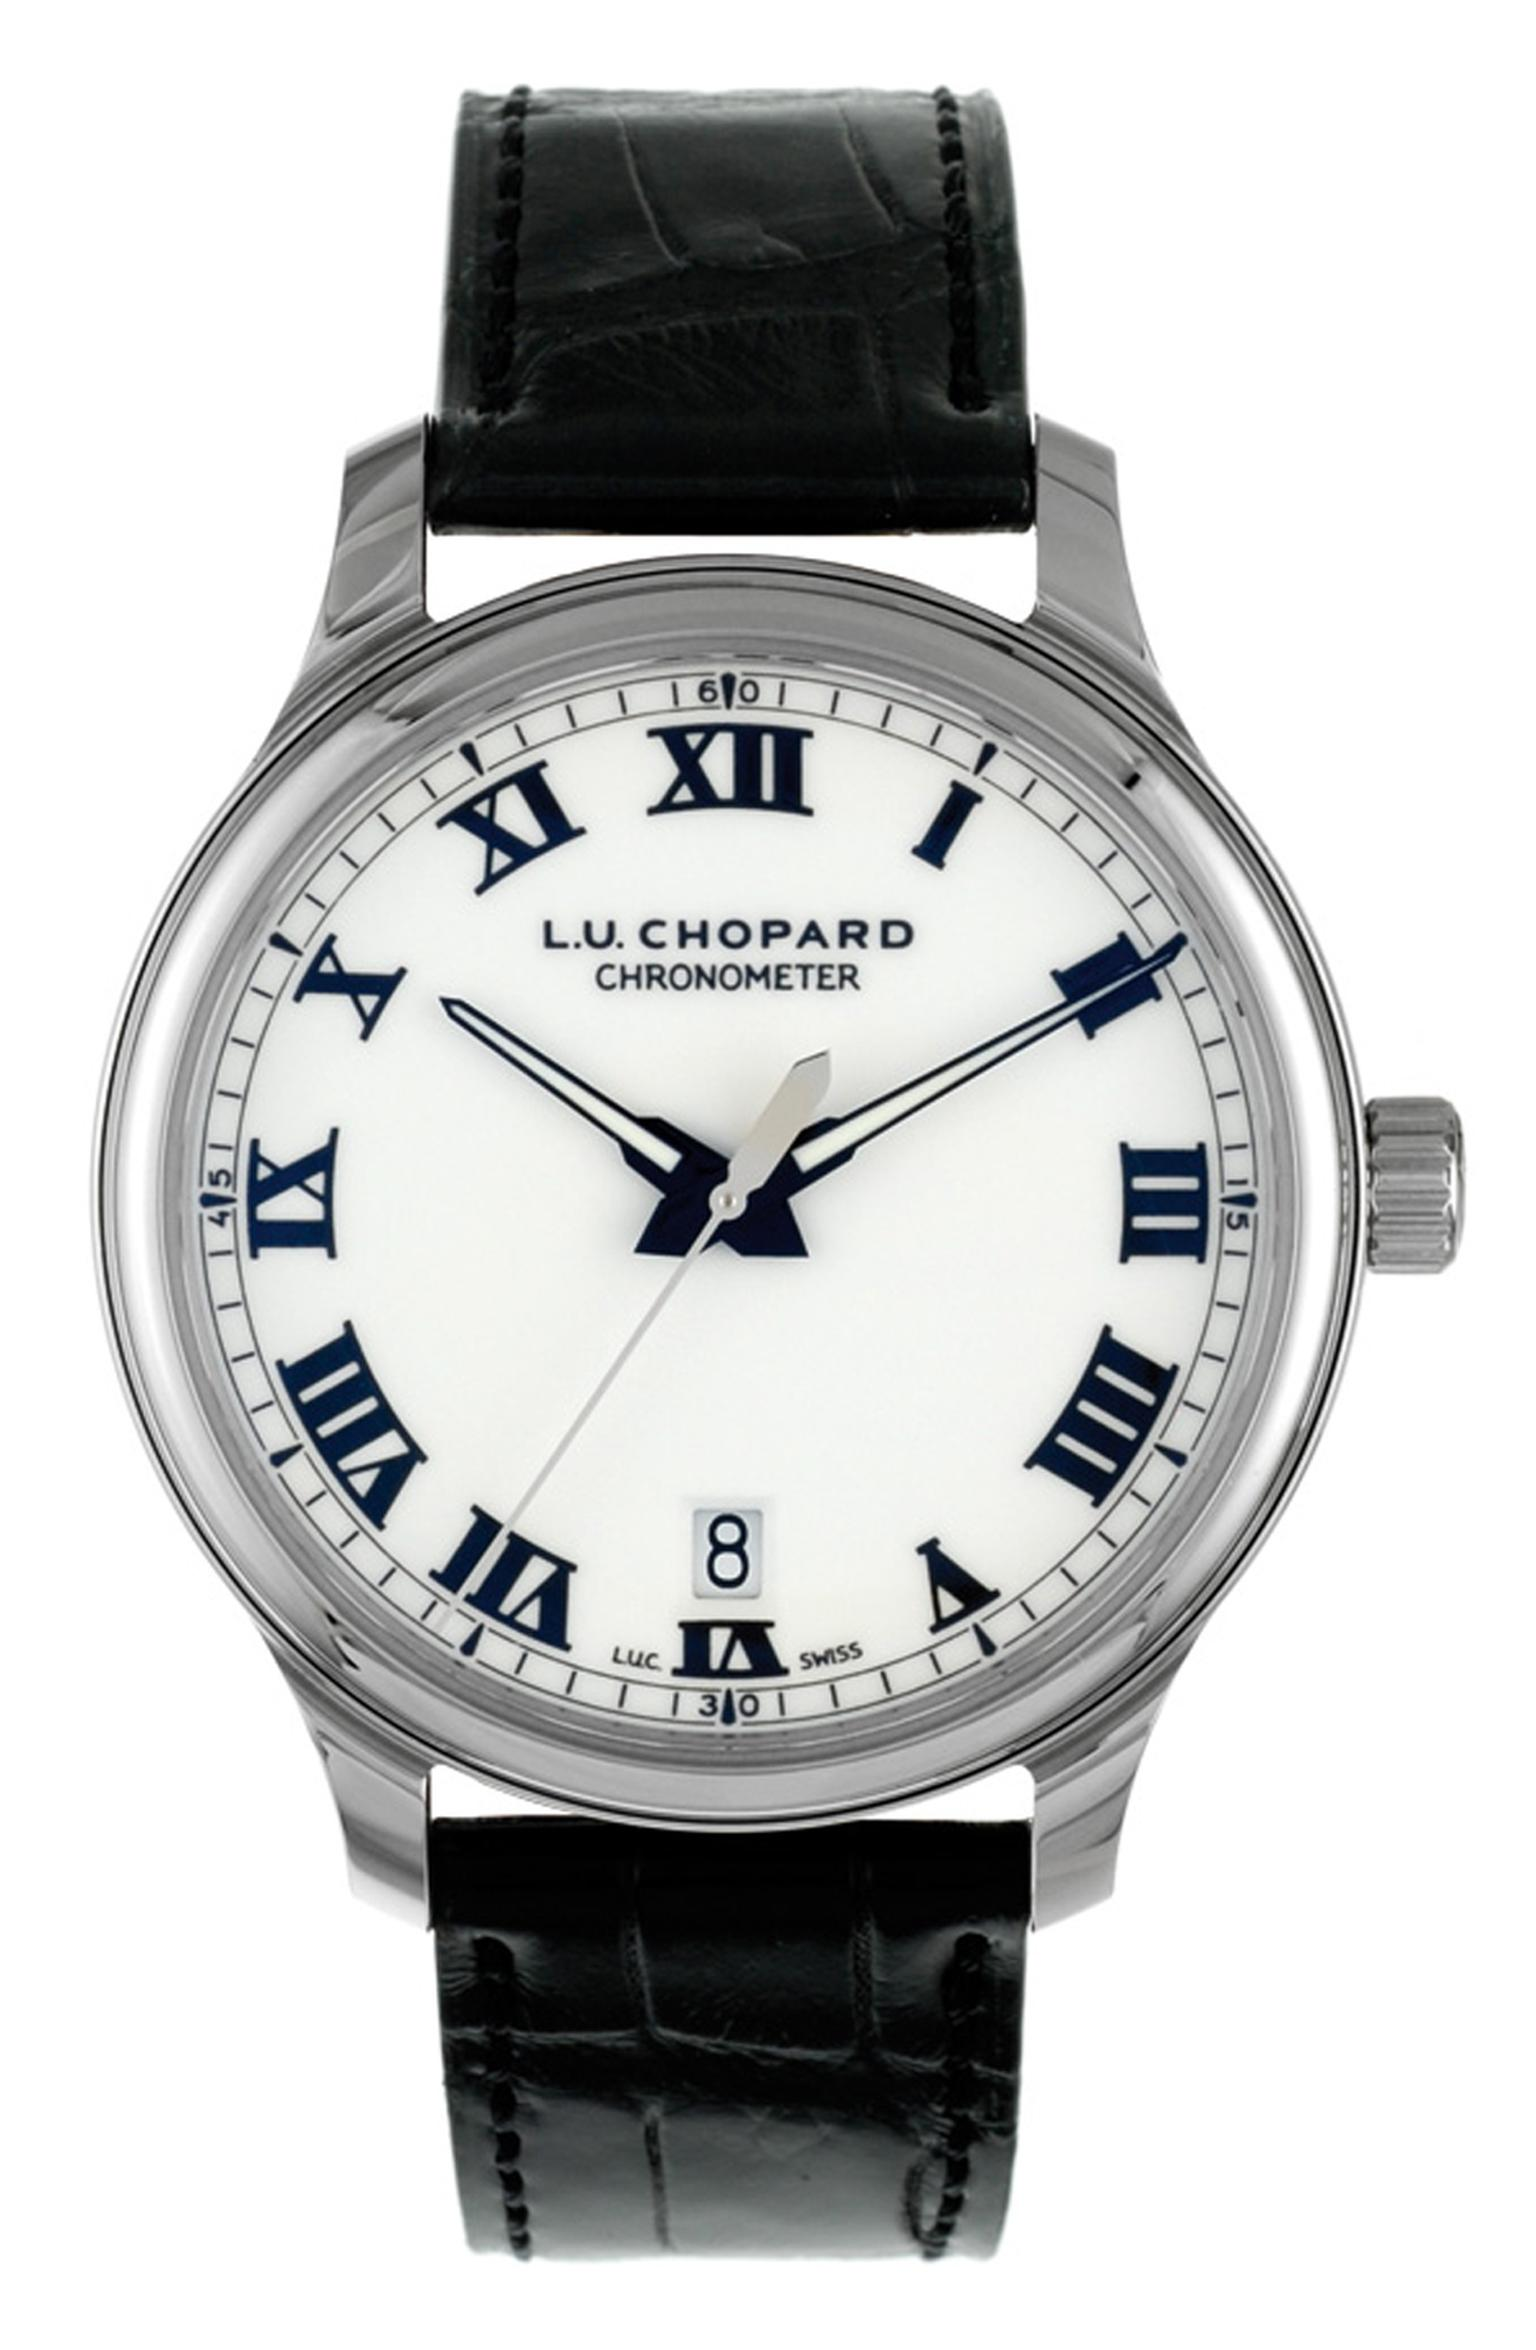 The stainless steel Chopard L.U.C 1937 Classic timepiece worn by Bradley Cooper to the 2014 Oscars